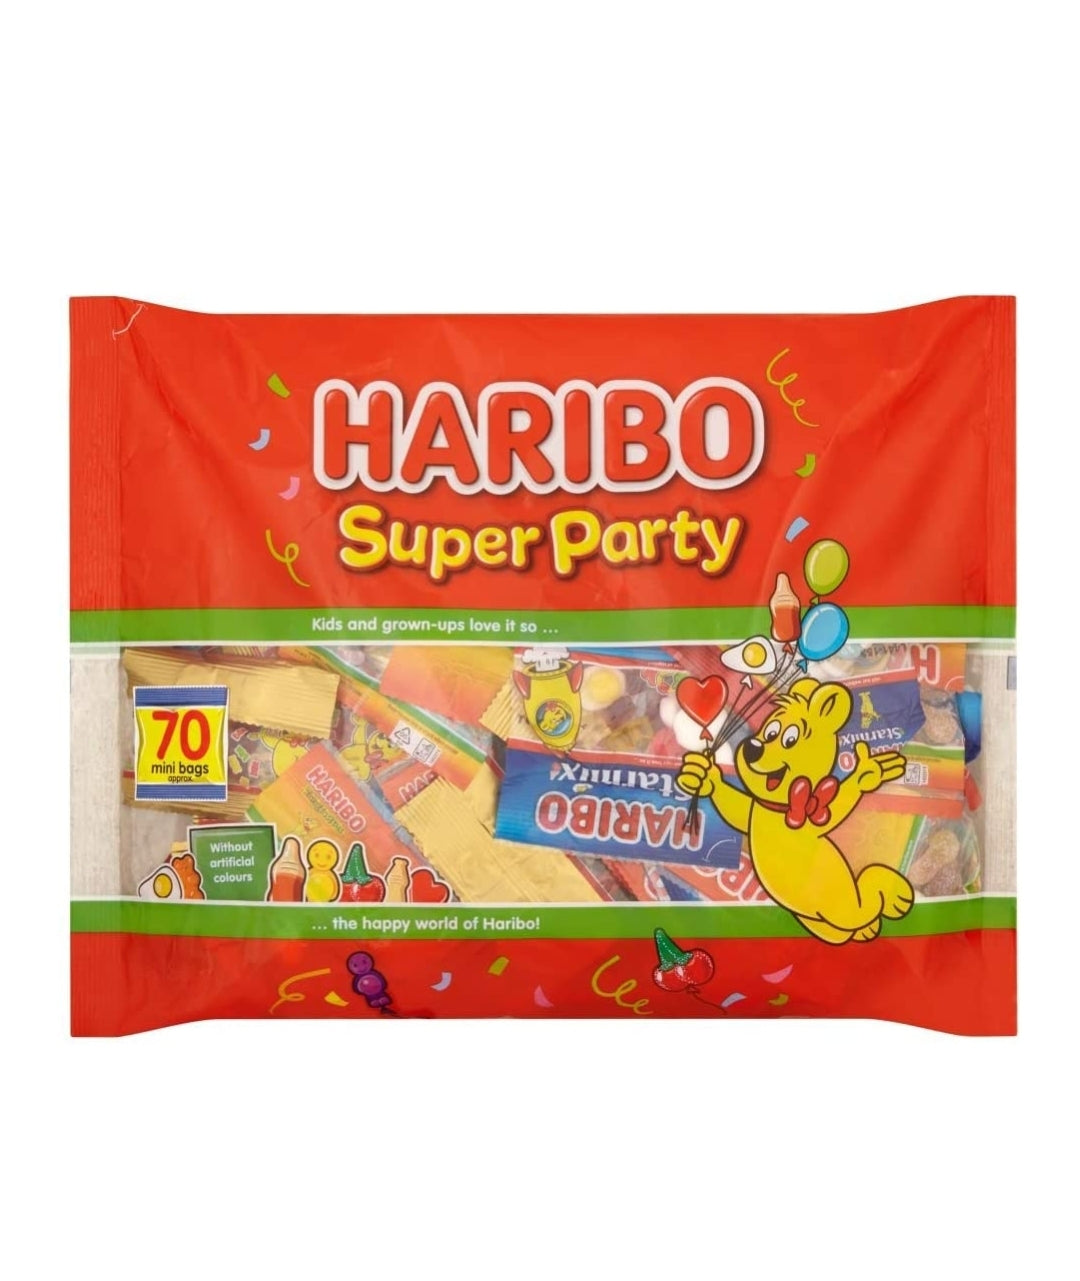 Haribo Super Party Mix - 70 Mini Bags, Food Items by Dog In A Box